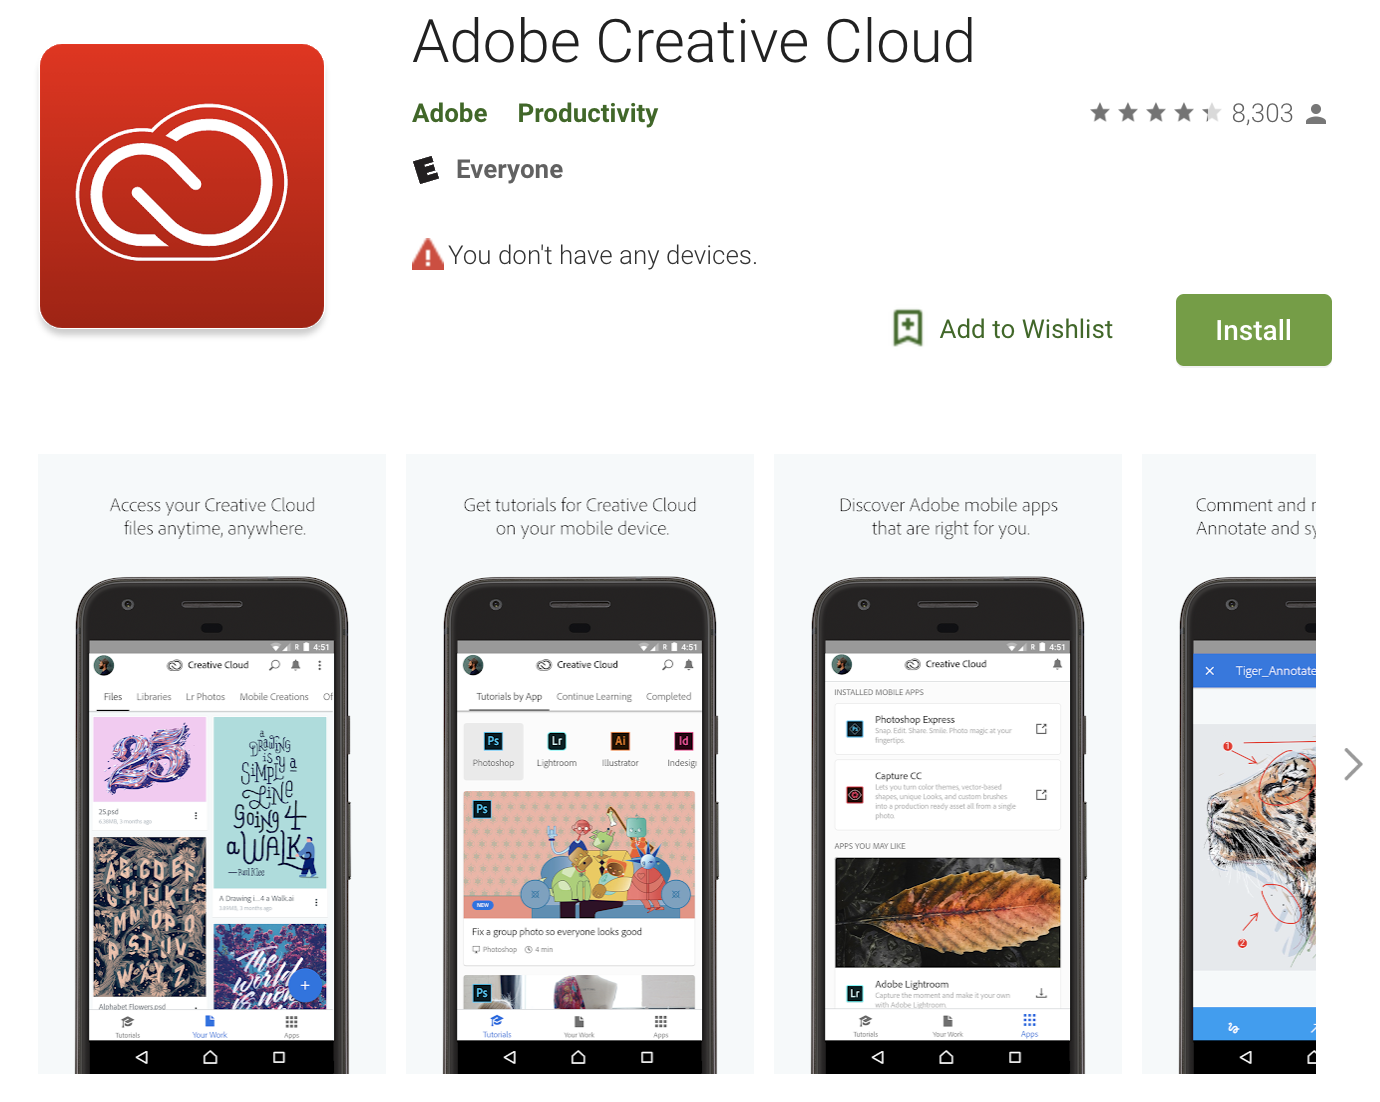 Getting Started With Adobe Creative Cloud